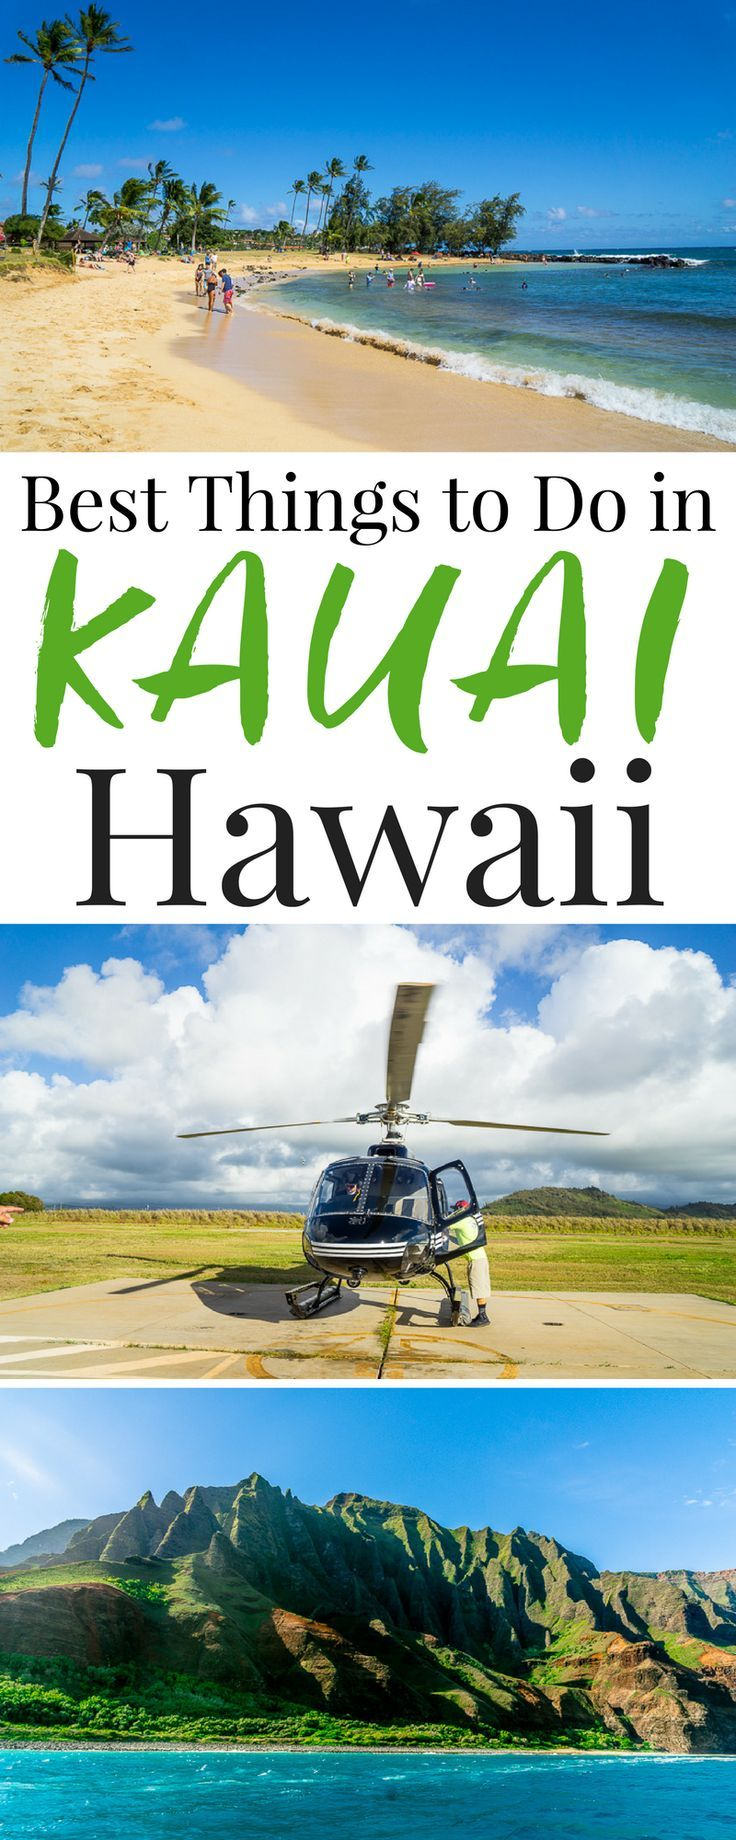 Planning a trip to Kauai, Hawaii and looking for fun and exciting ways to explore and experience everything the island has to offer? Check out this list of the Best Things To Do In Kauai for great ideas and recommendations from scenic hikes to luaus!